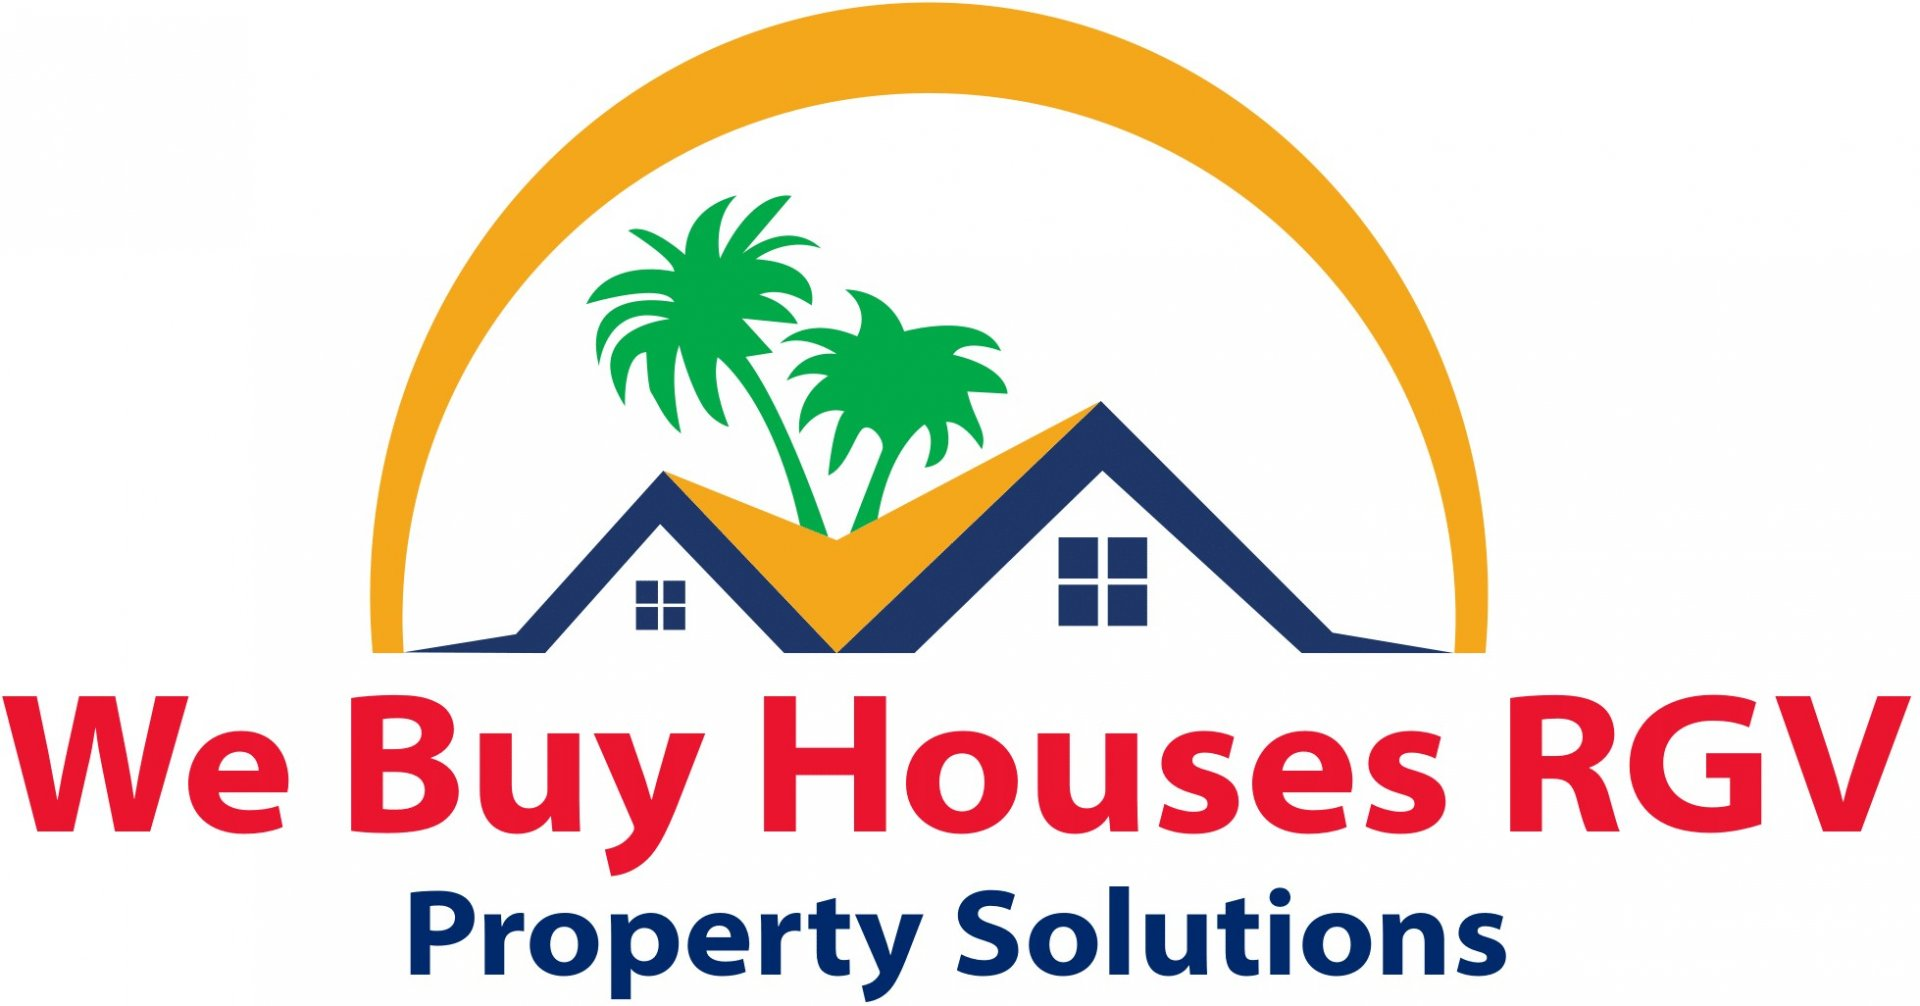 We Buy Houses RGV  logo